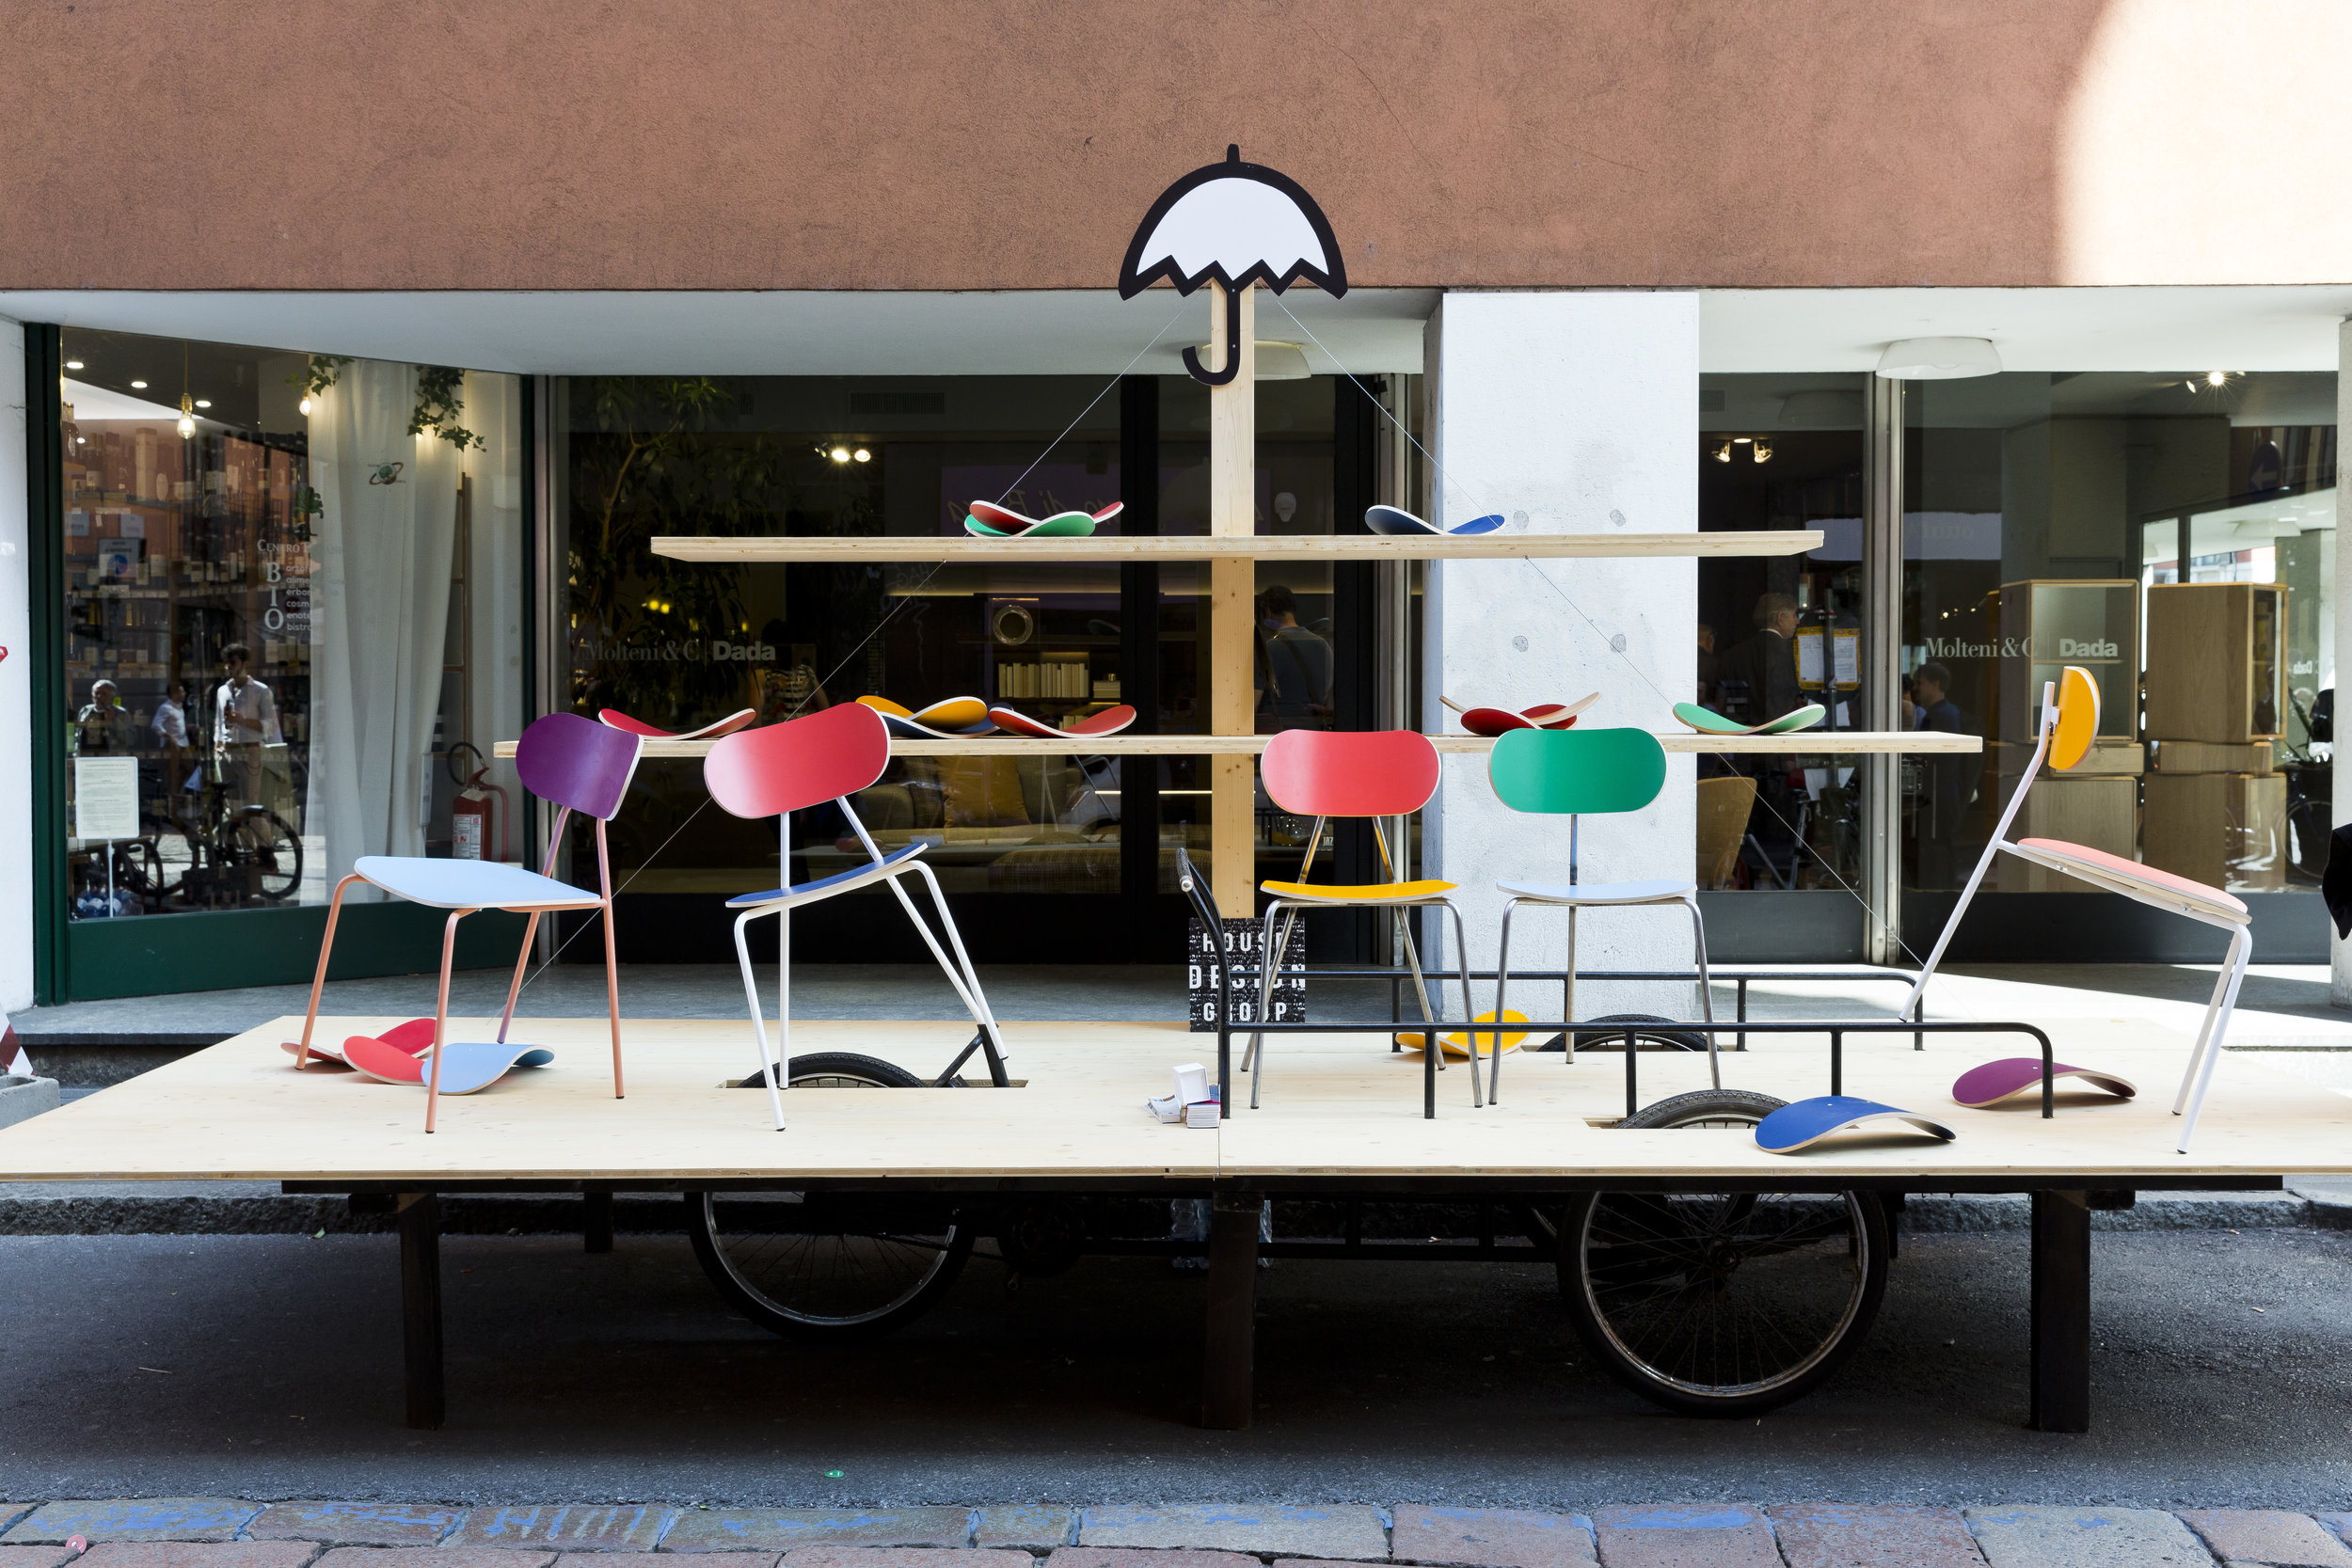 In the streets of the Brera Design District where more than 100 exhibitions themeed around 'Be Human: Designing with Empathy'.